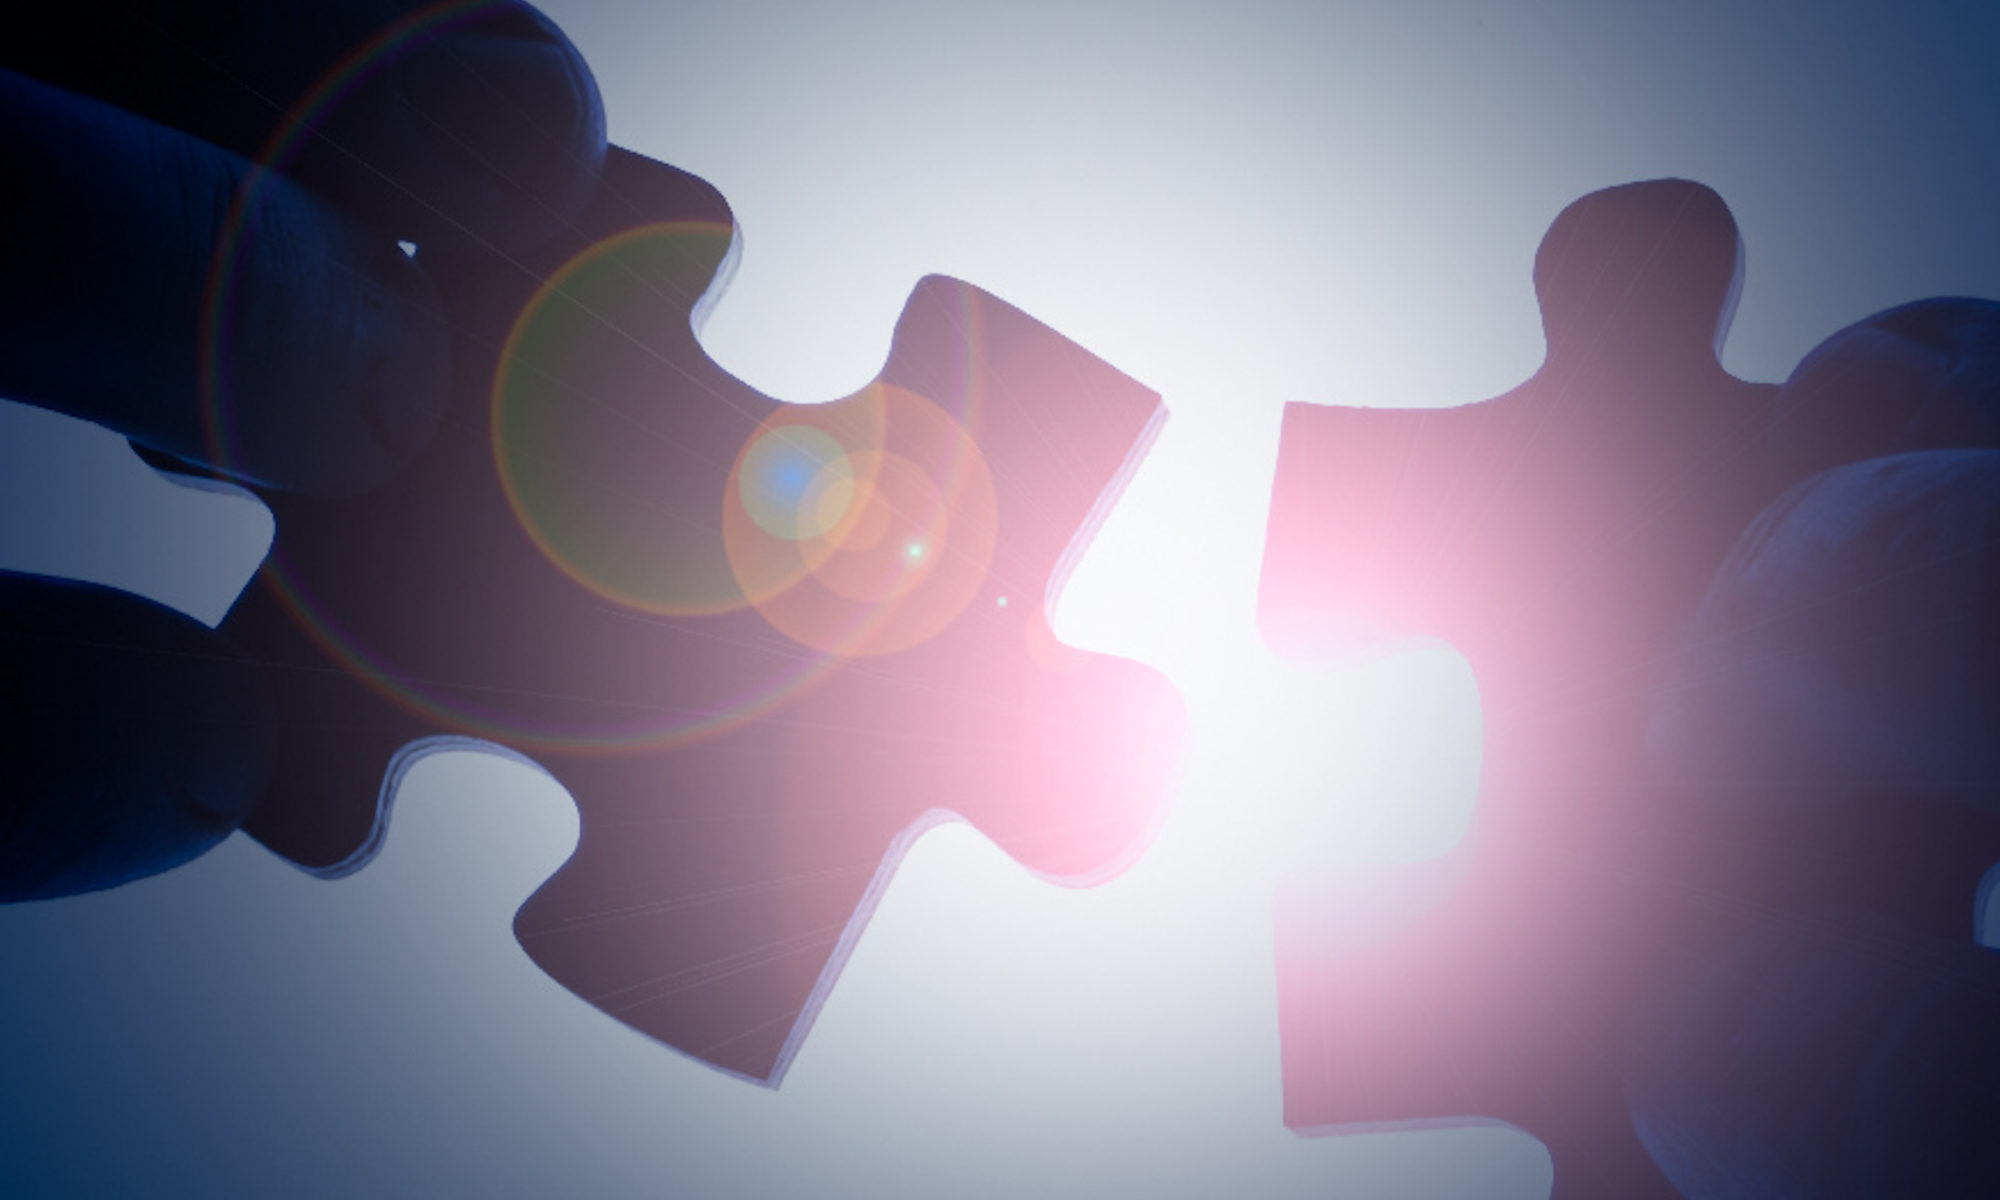 light glares down between two opposing puzzle pieces